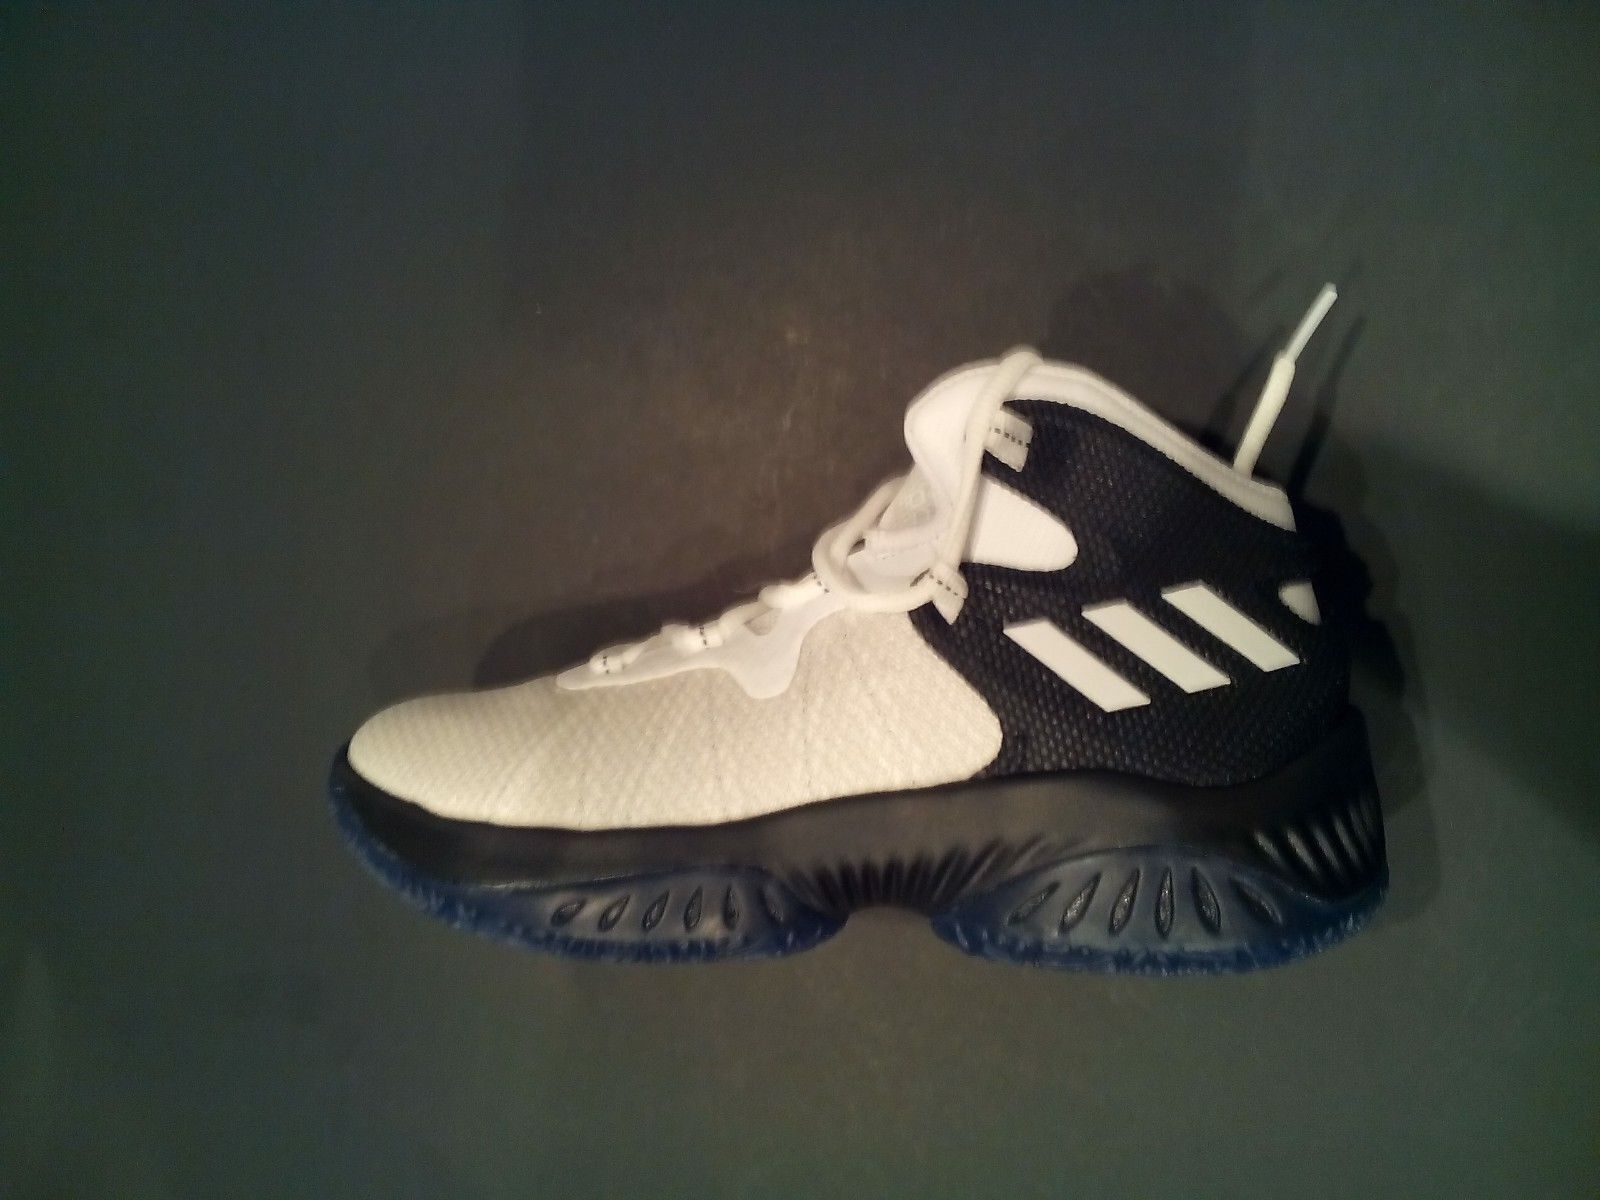 Adidas performance bw1156 kinder explosive bounce j j j basketball - schuh sz-4.5 3b9cd5